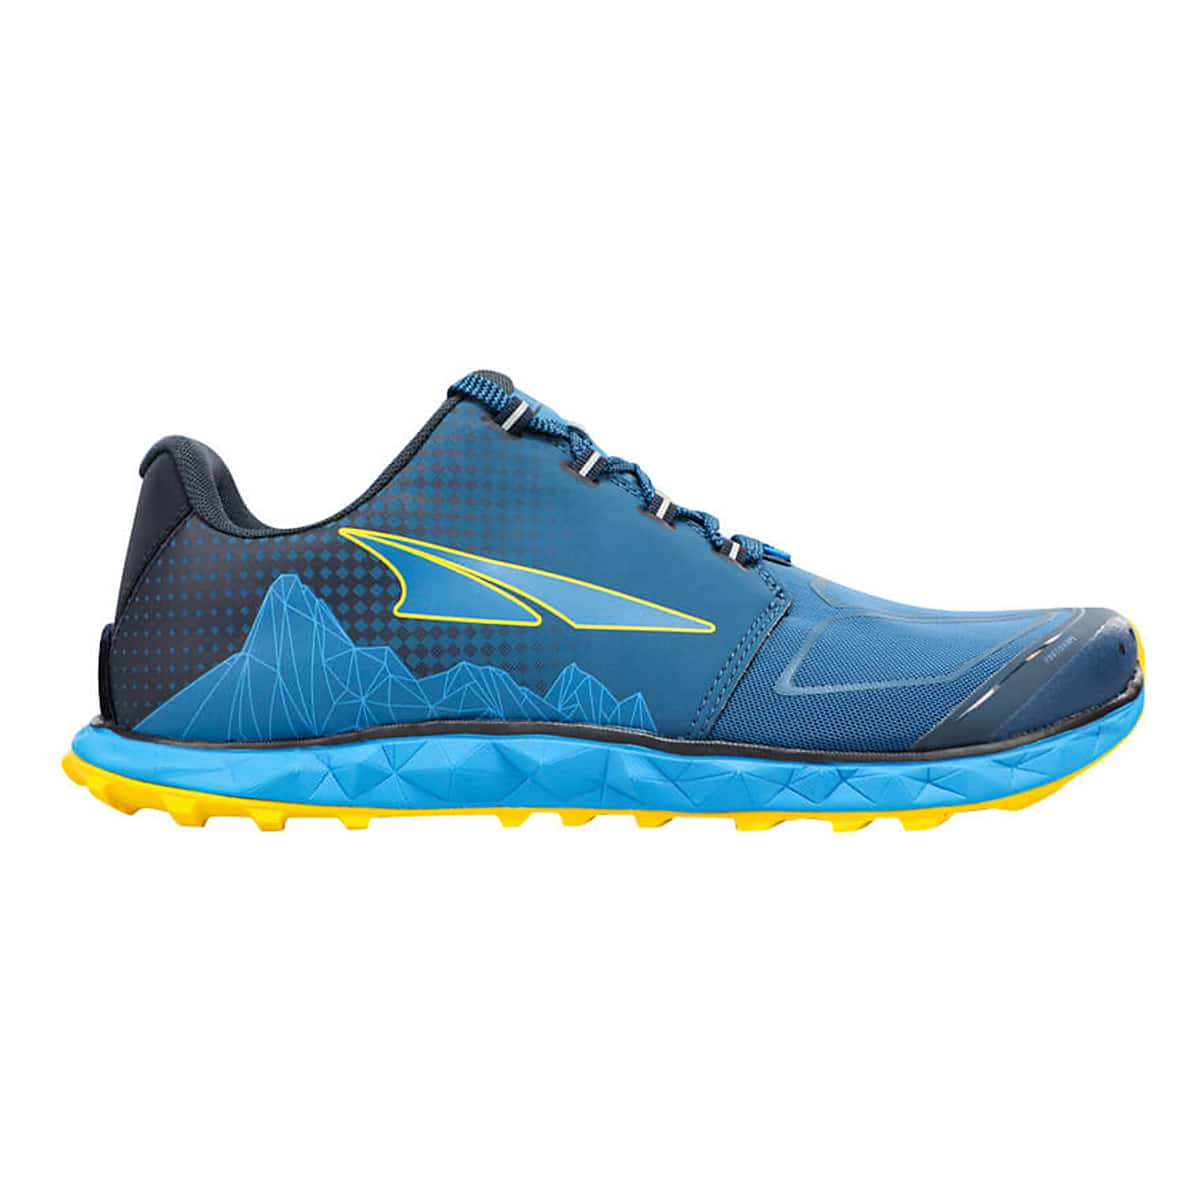 Men's or Women's Altra Superior 4.5 Trail Running Shoe (Various Colors): $66 (Retail: $109.95) + Free Shipping